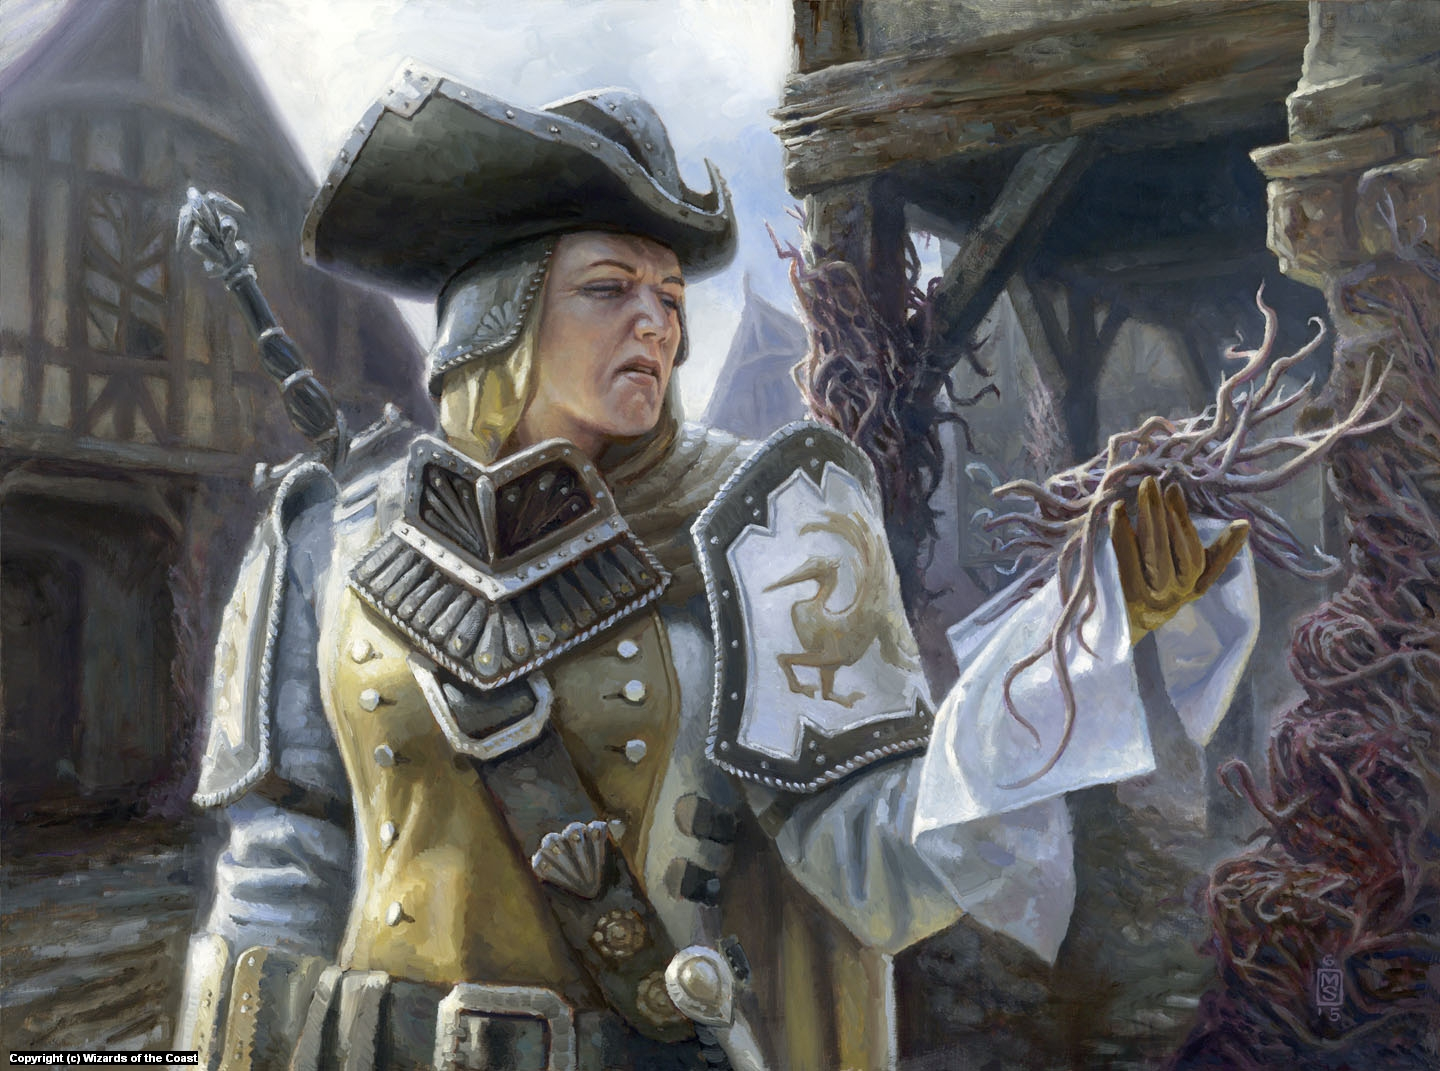 The 540: Top 5 Innistrad Cards For Cube